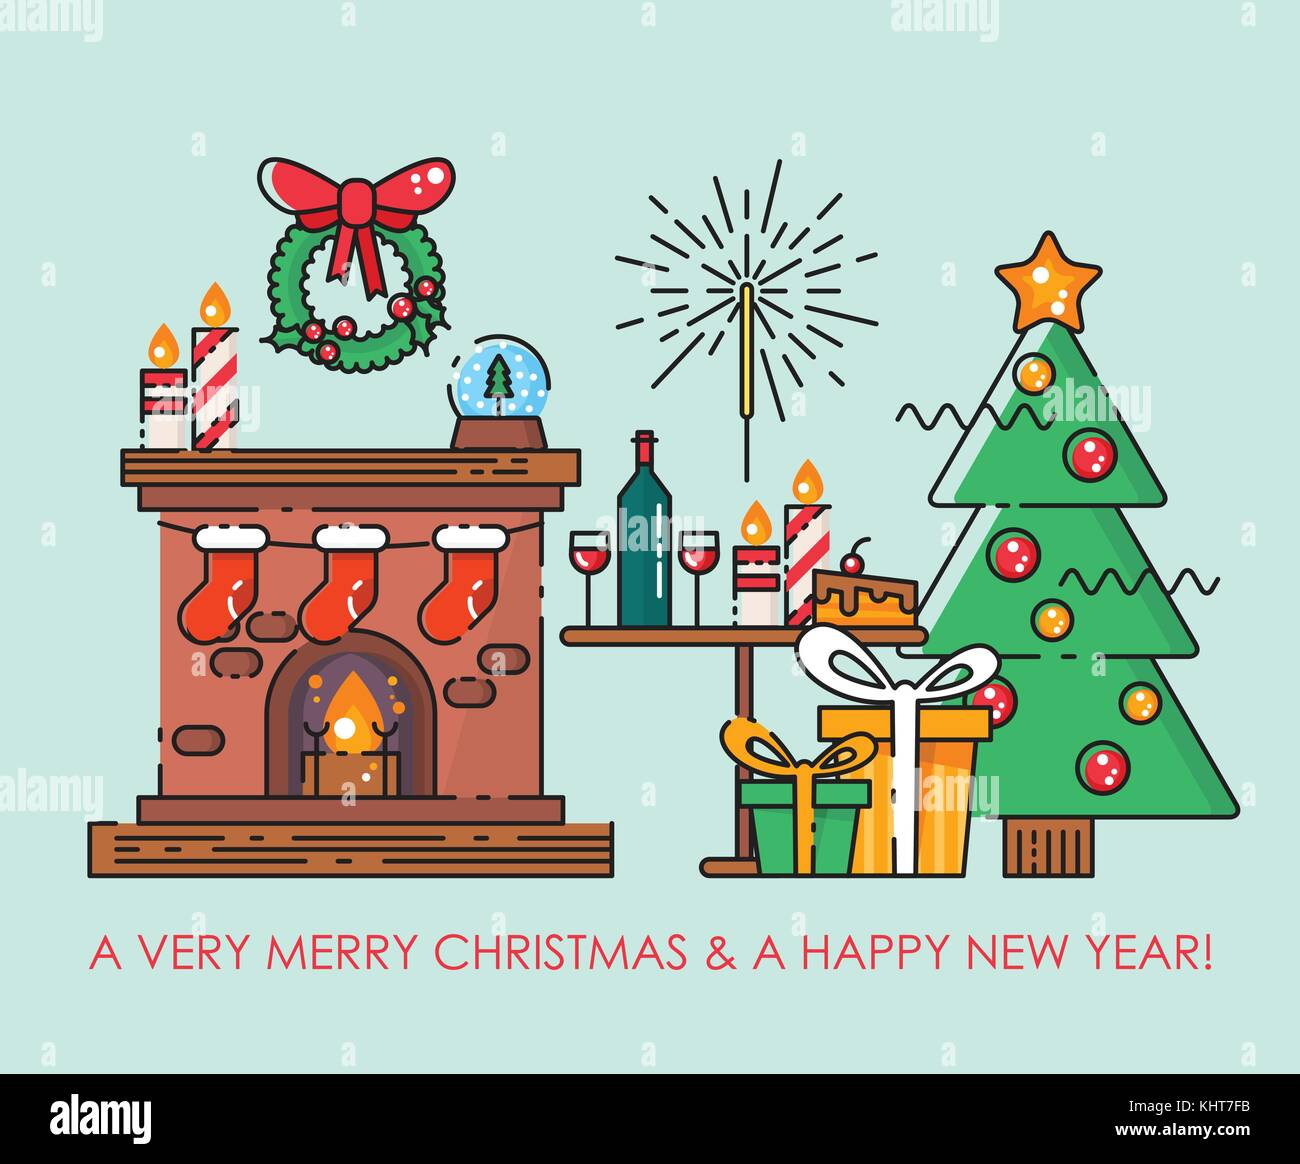 Merry Christmas Greeting Card Happy New Year Wishes Poster In Flat